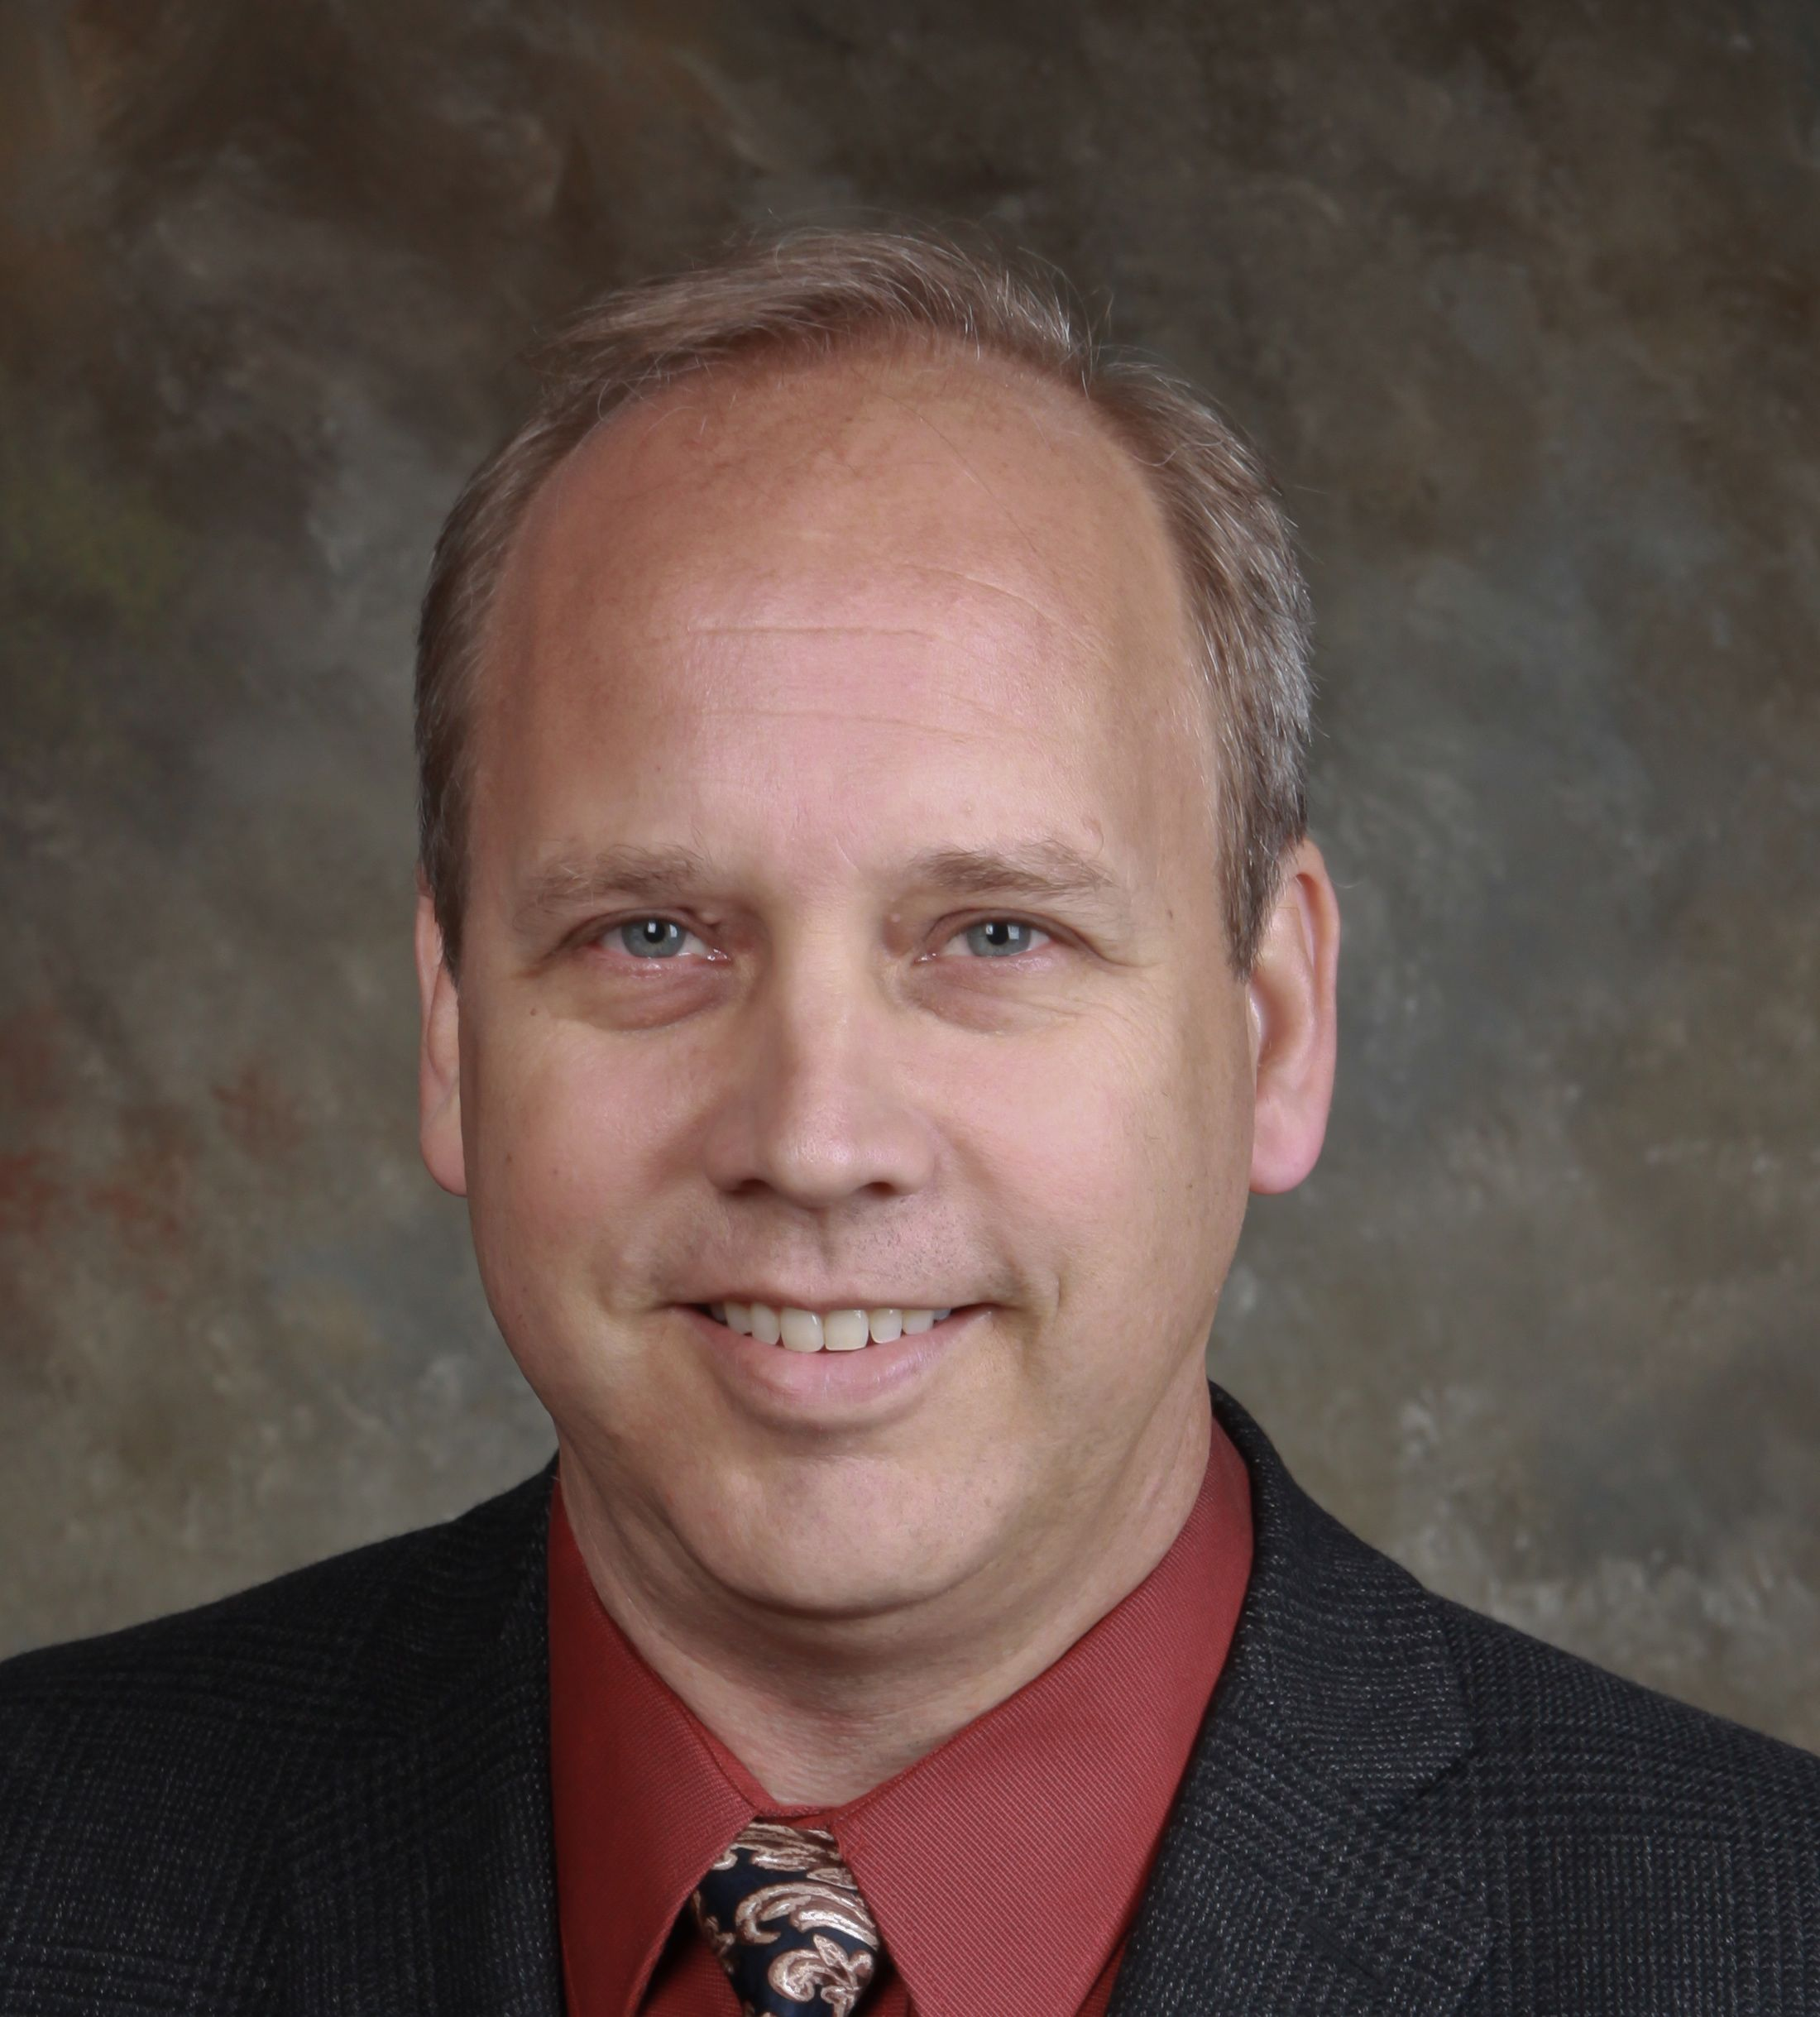 OfficePhotoJul2012 close